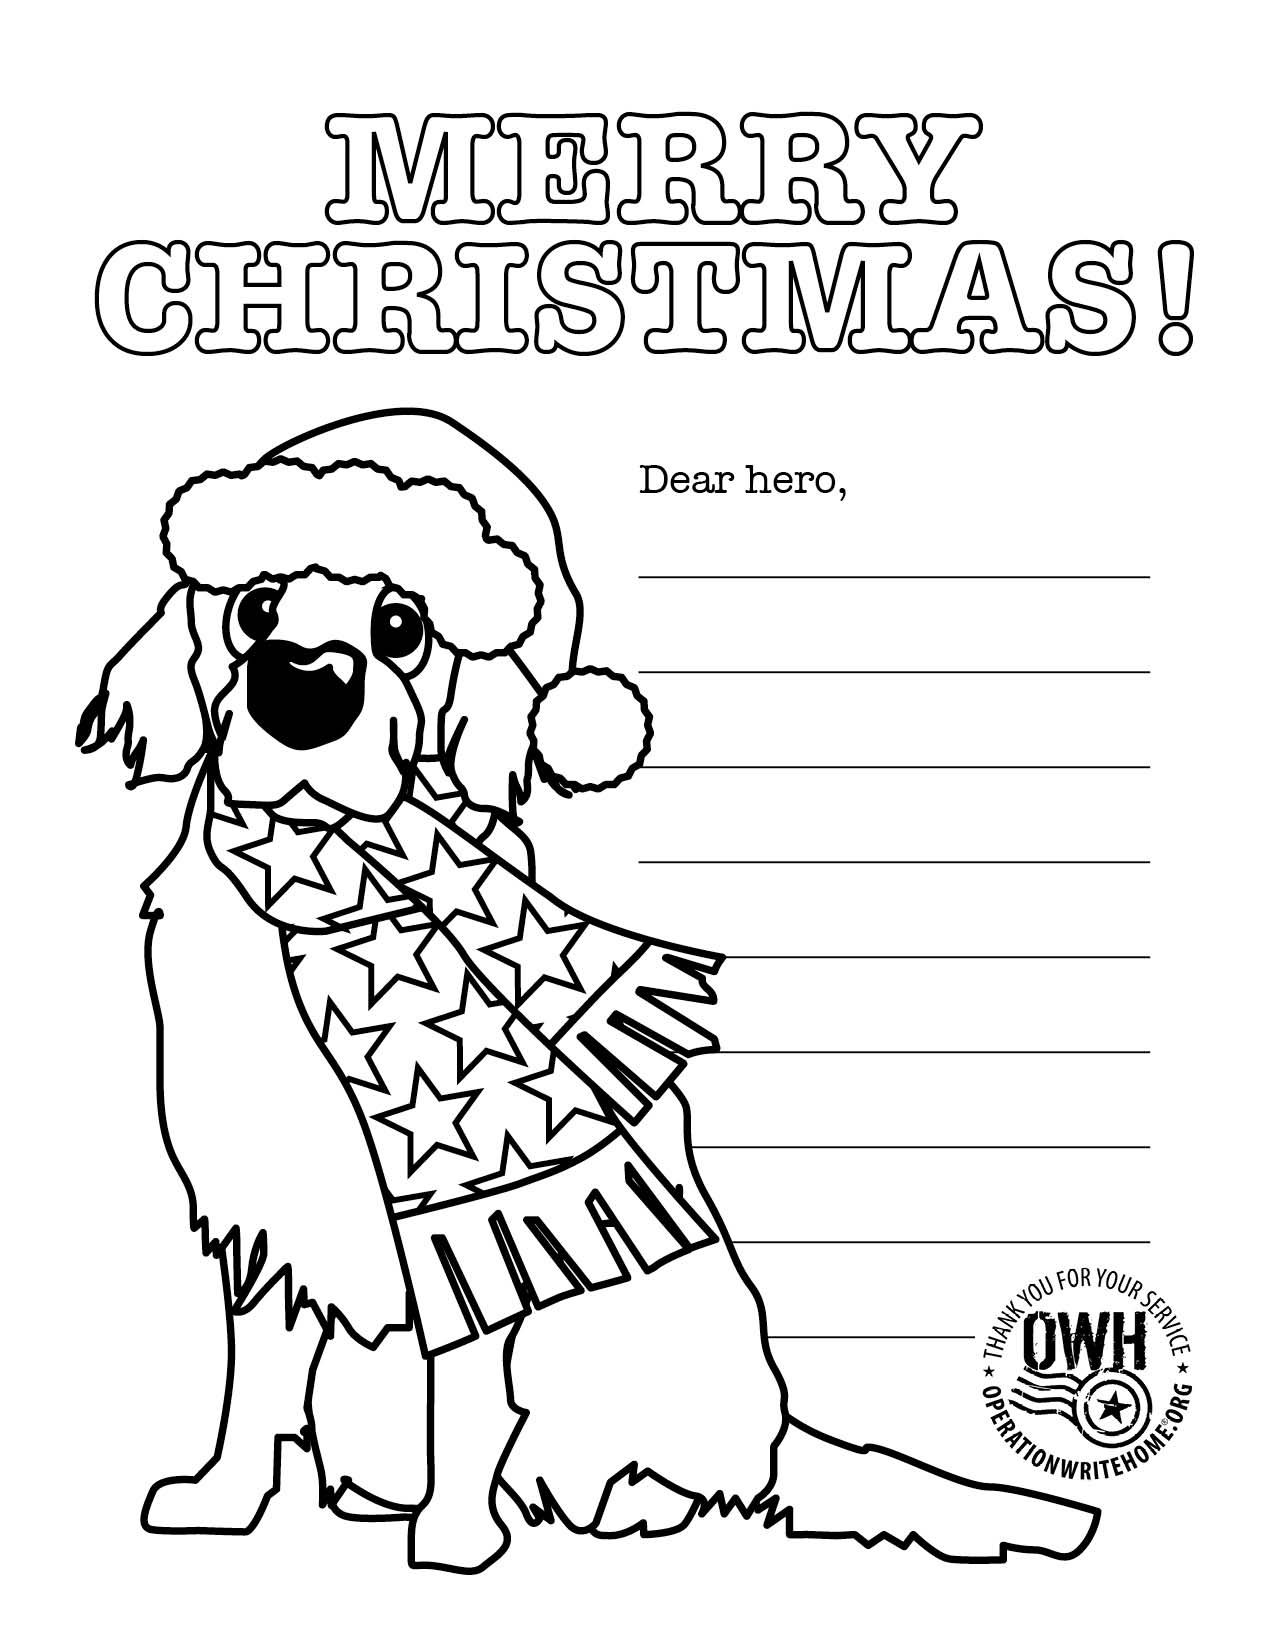 Christmas Coloring Pages For Soldiers With Operation Write Home Children Can Complete These